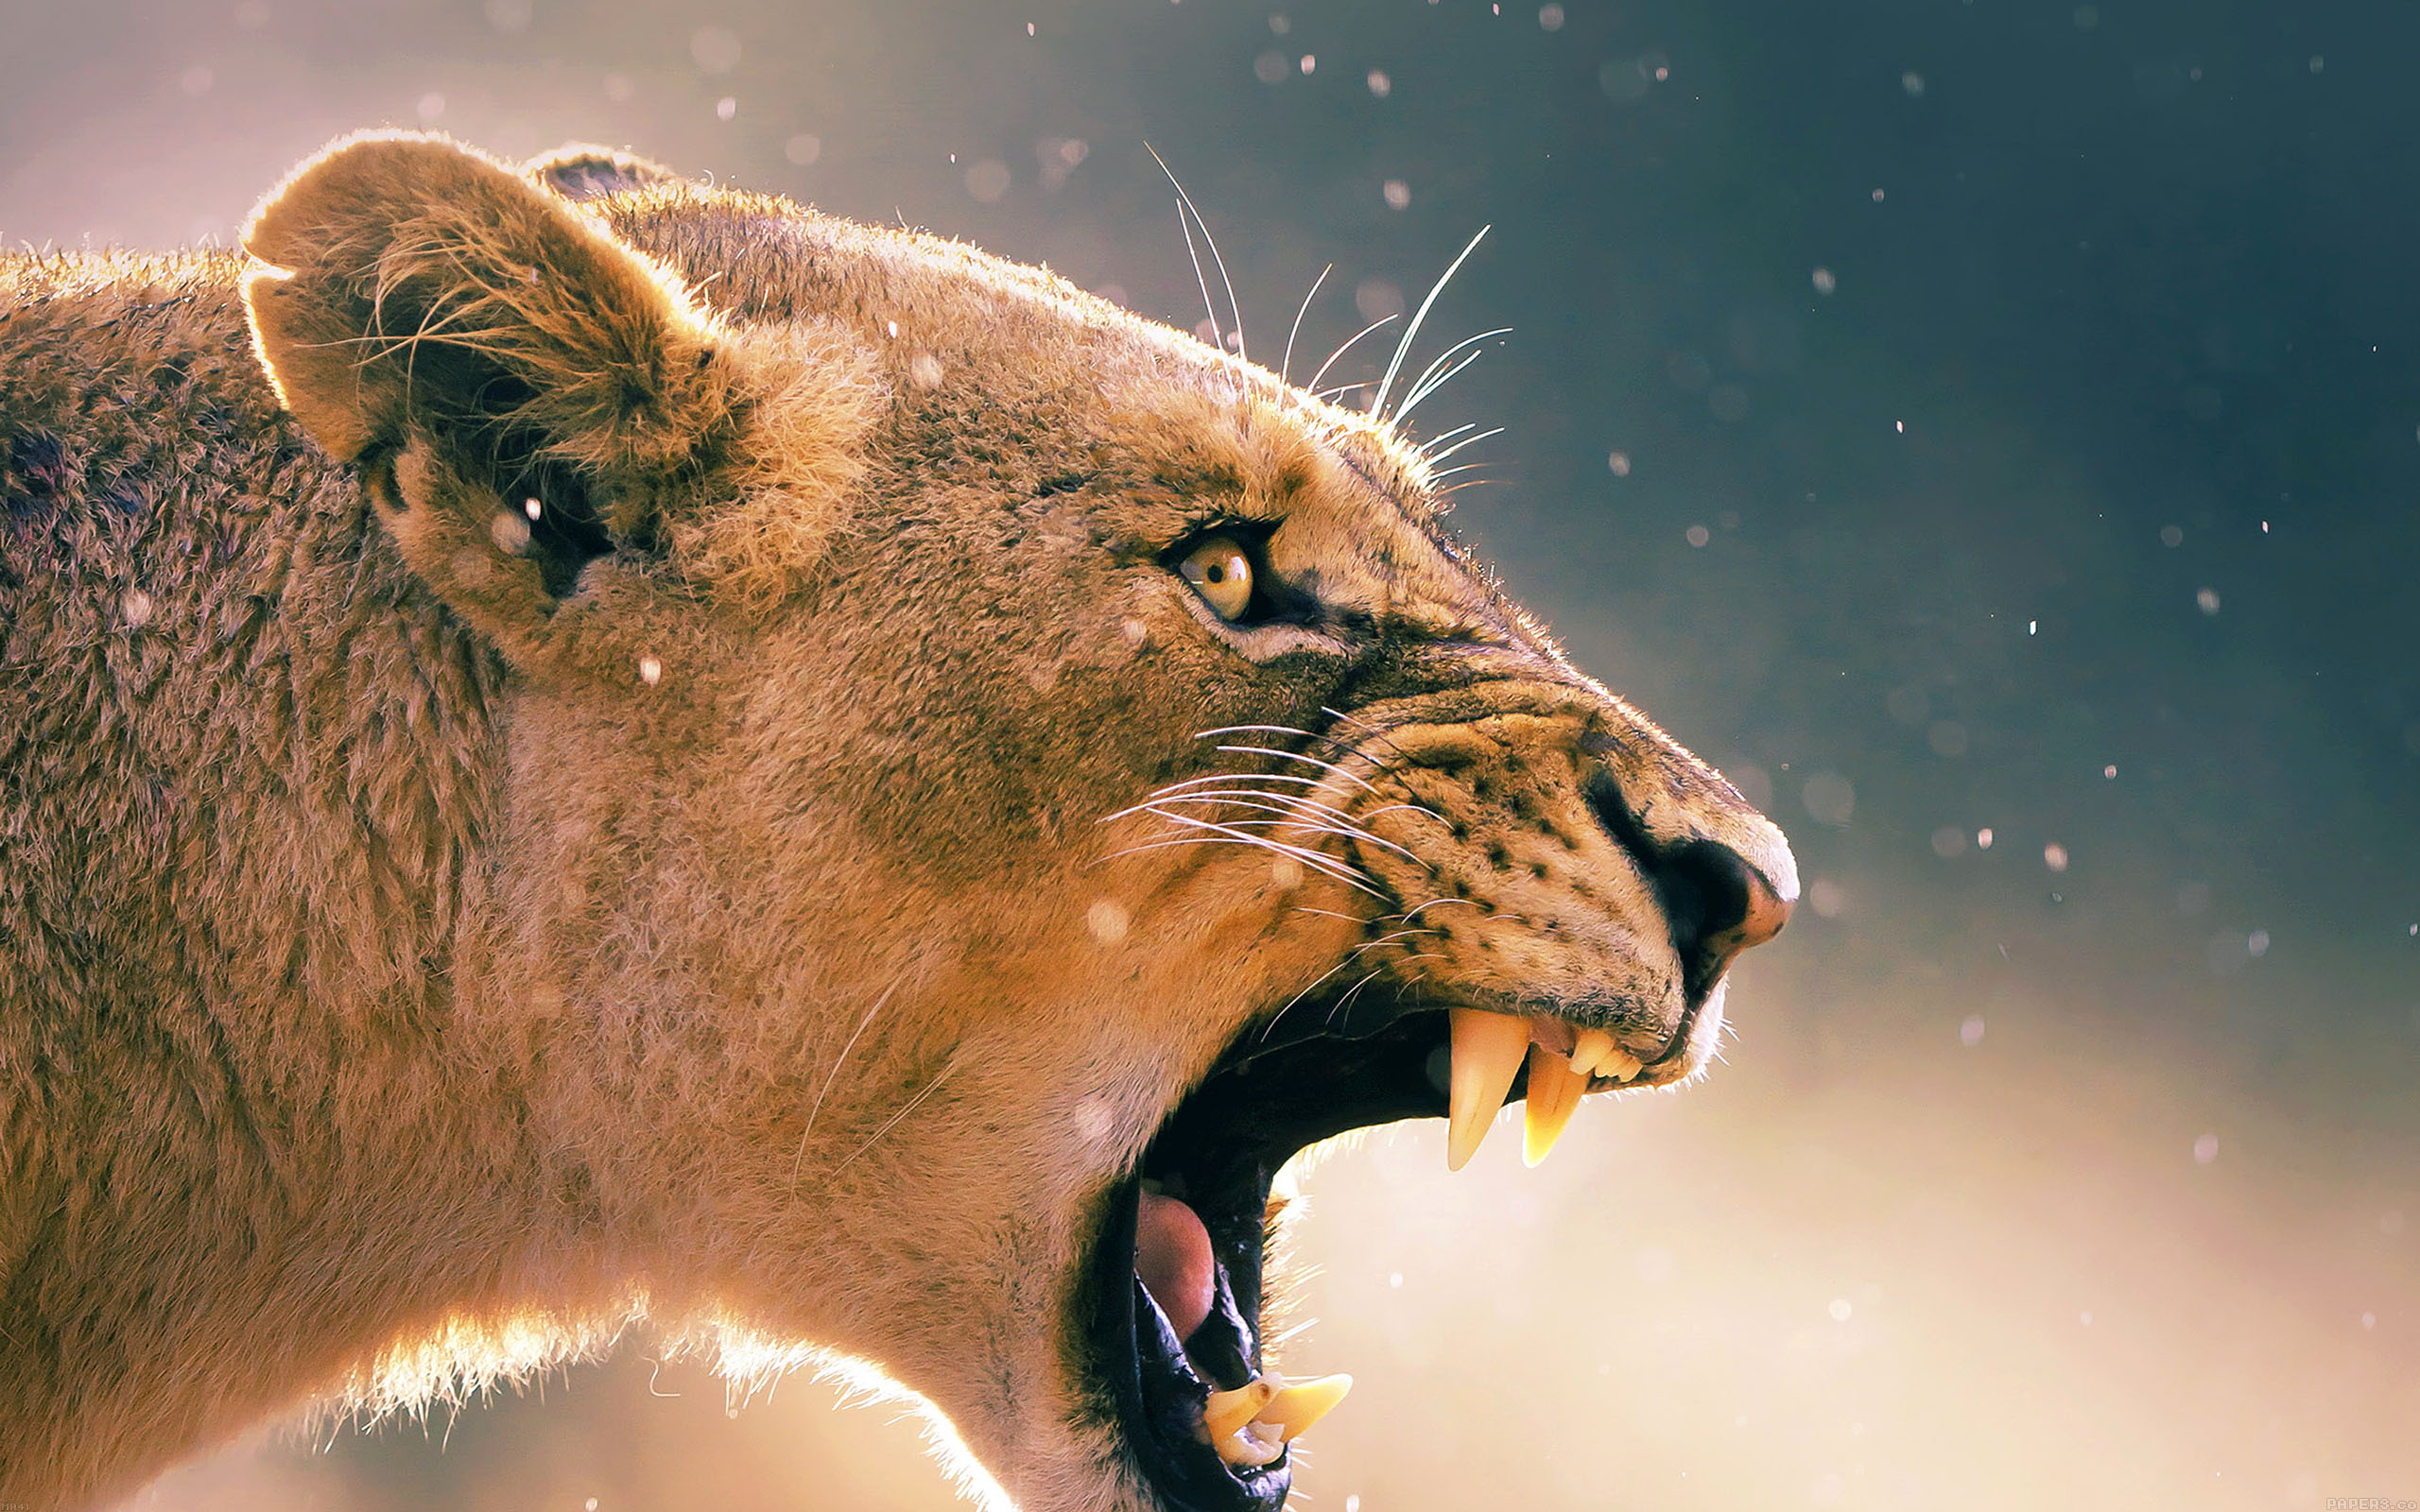 3d Car Wallpaper 1366x768 Ma41 Angry Lion One Animal Nature Papers Co